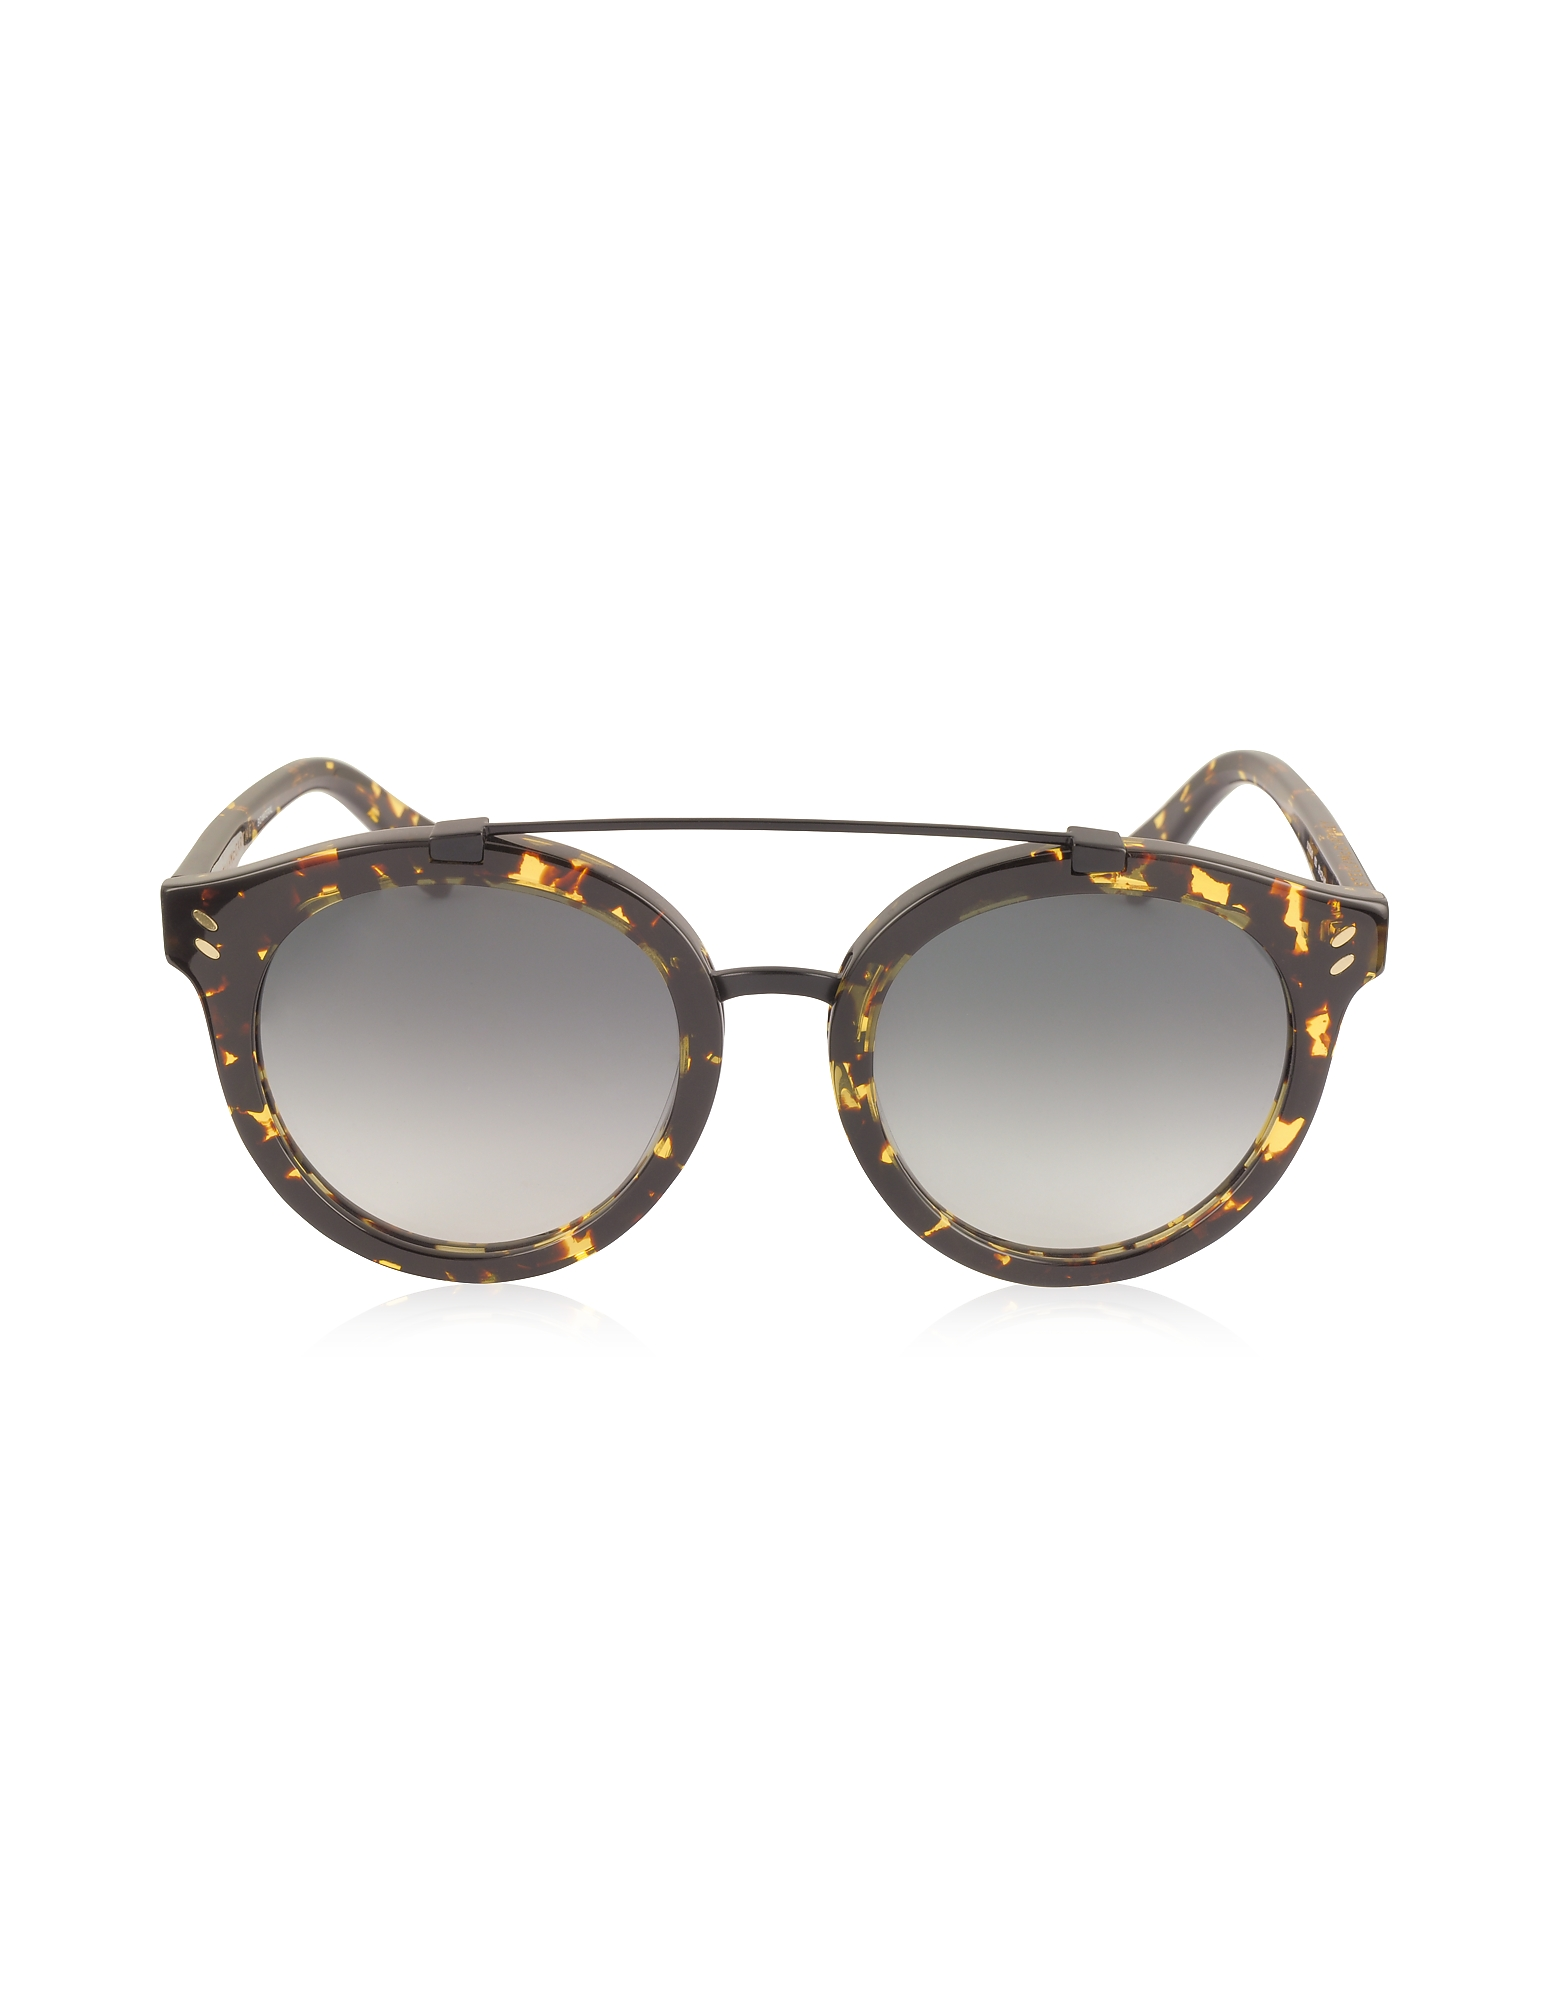 Stella McCartney Sunglasses, SC0054S Round Aviator Acetate Women's Sunglasses